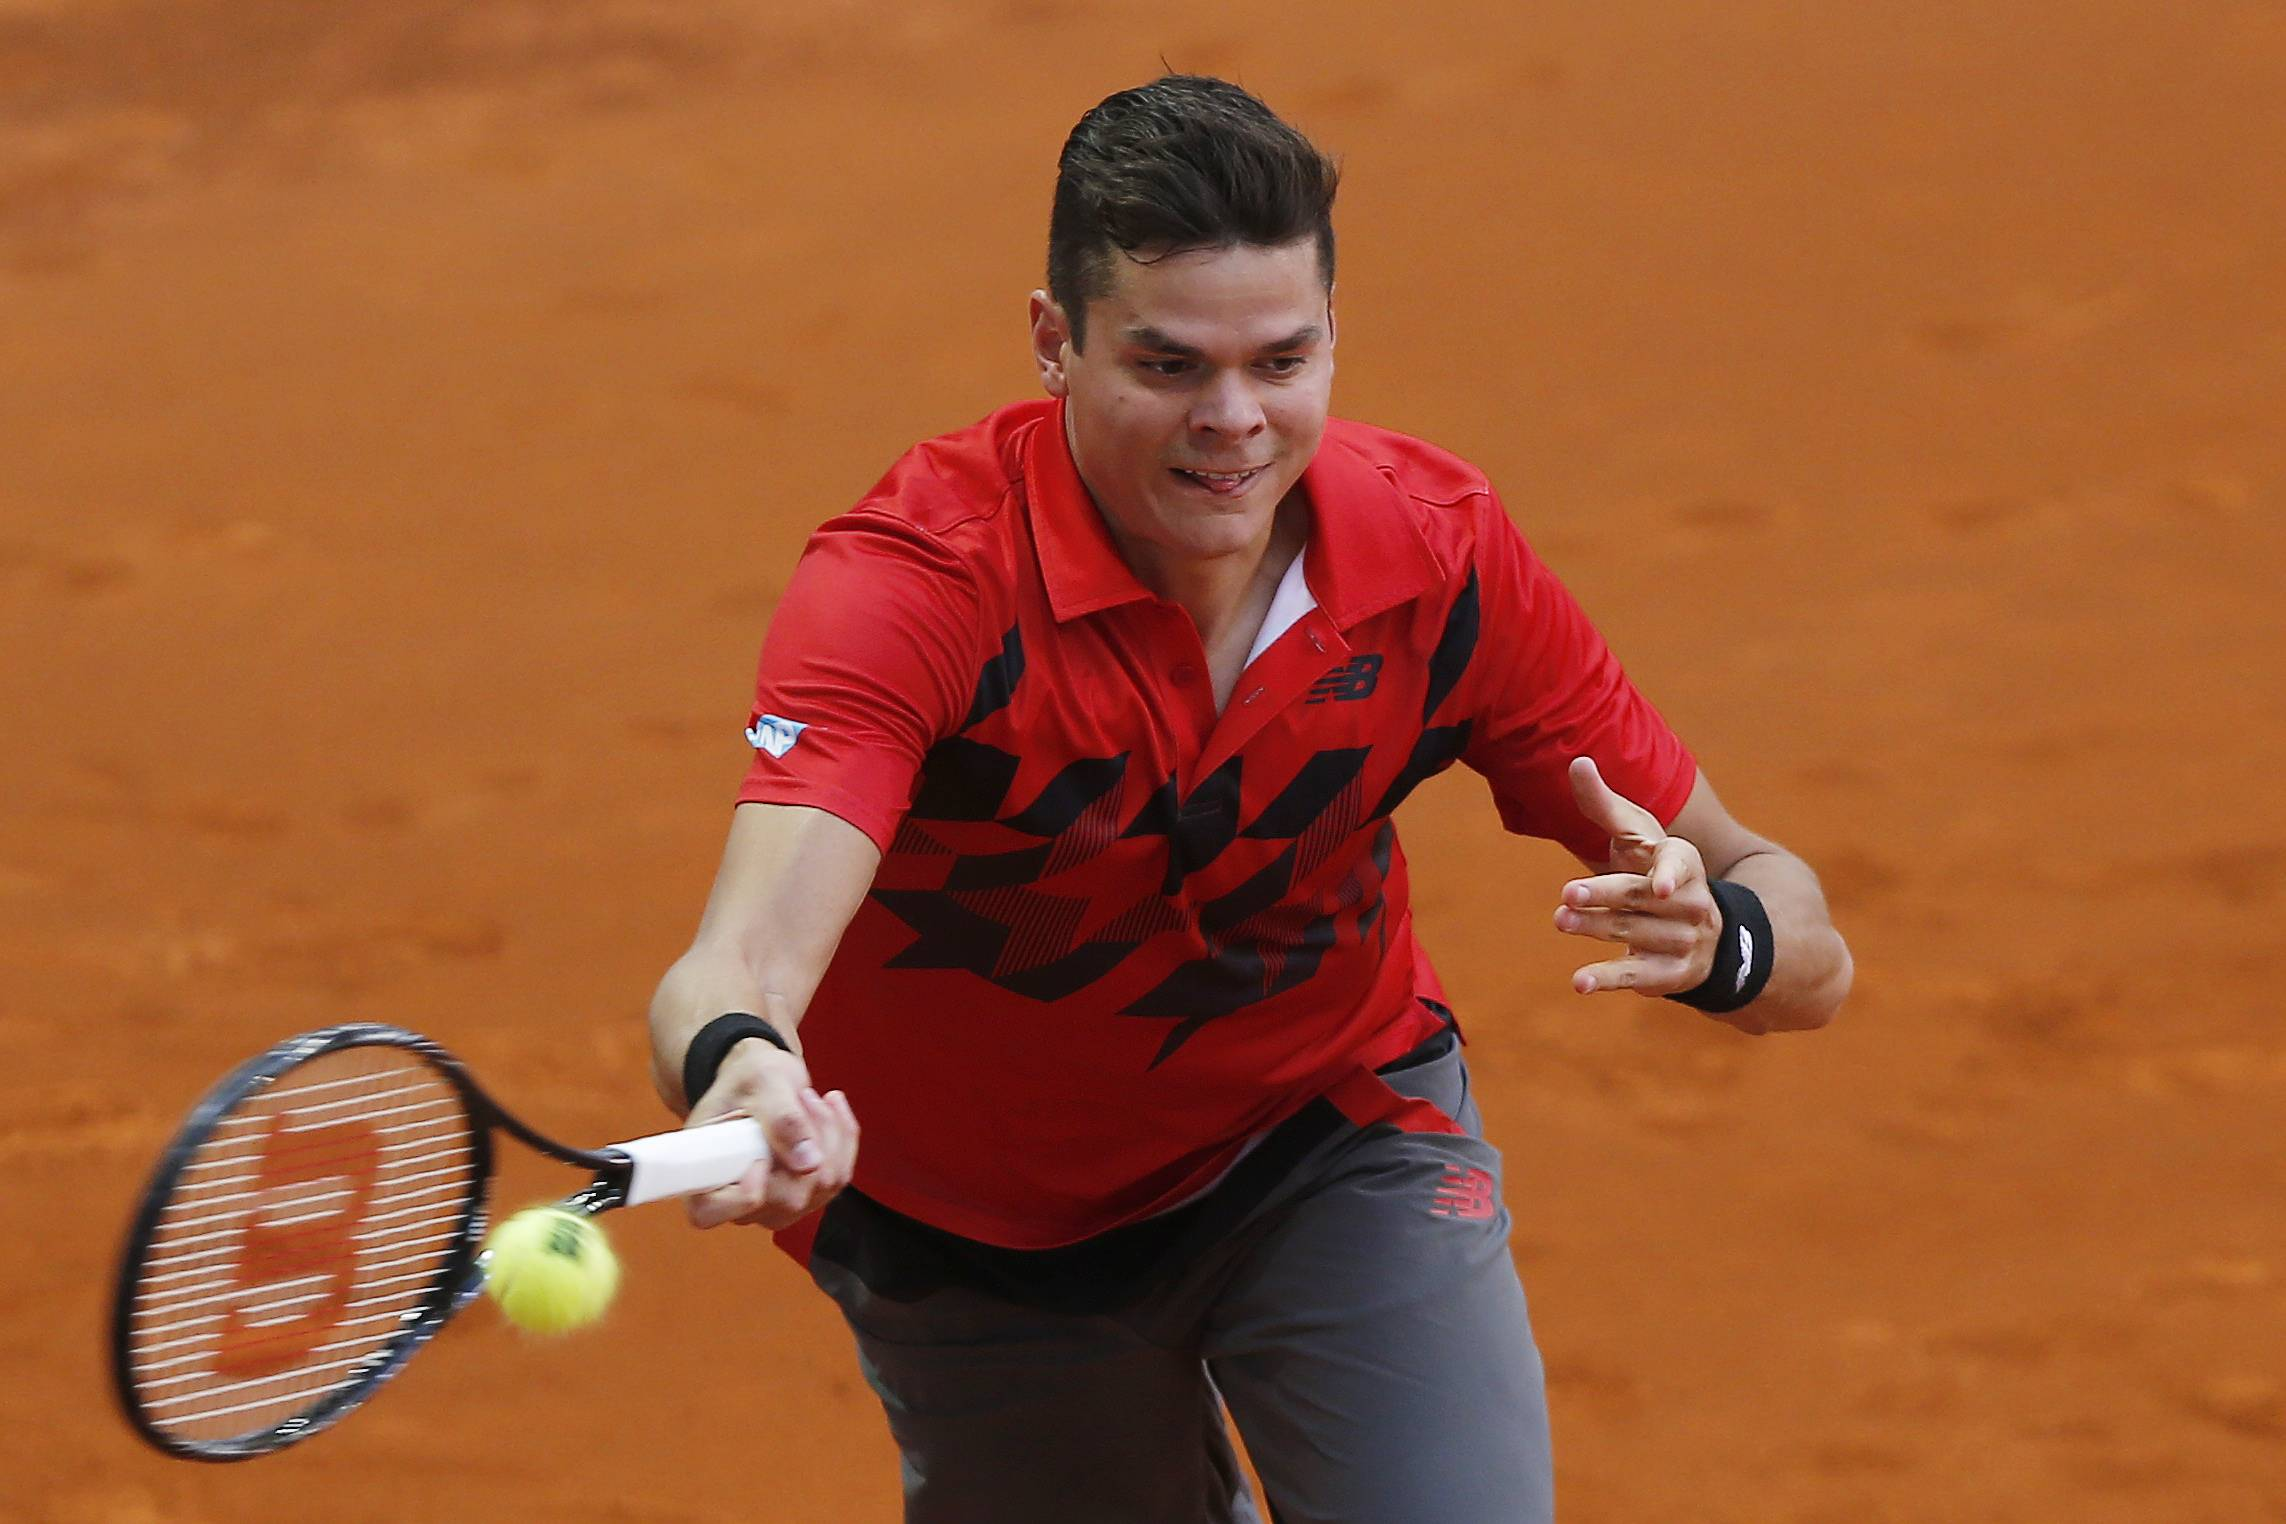 Milos Raonic from Canada returns the ball during a Madrid Open tennis tournament match against Jeremy Chardy from France, in Madrid, Spain, Tuesday, May 6, 2014.